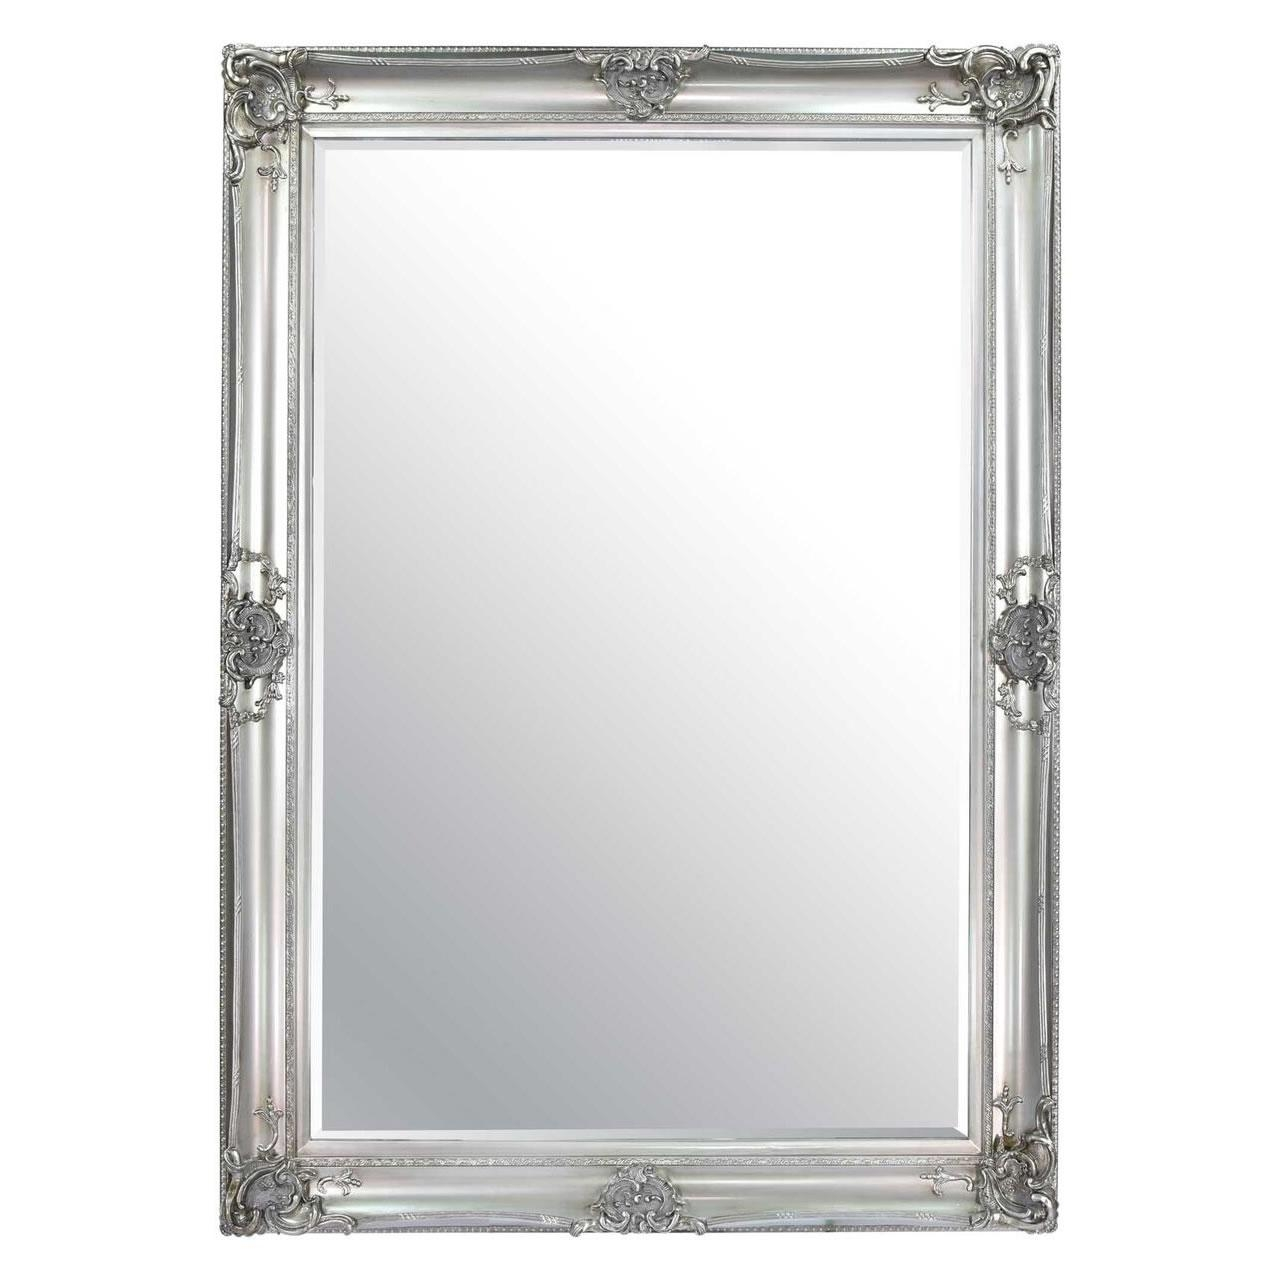 Ornate Framed Mirrors Intended For Ornate White Mirrors (View 8 of 20)